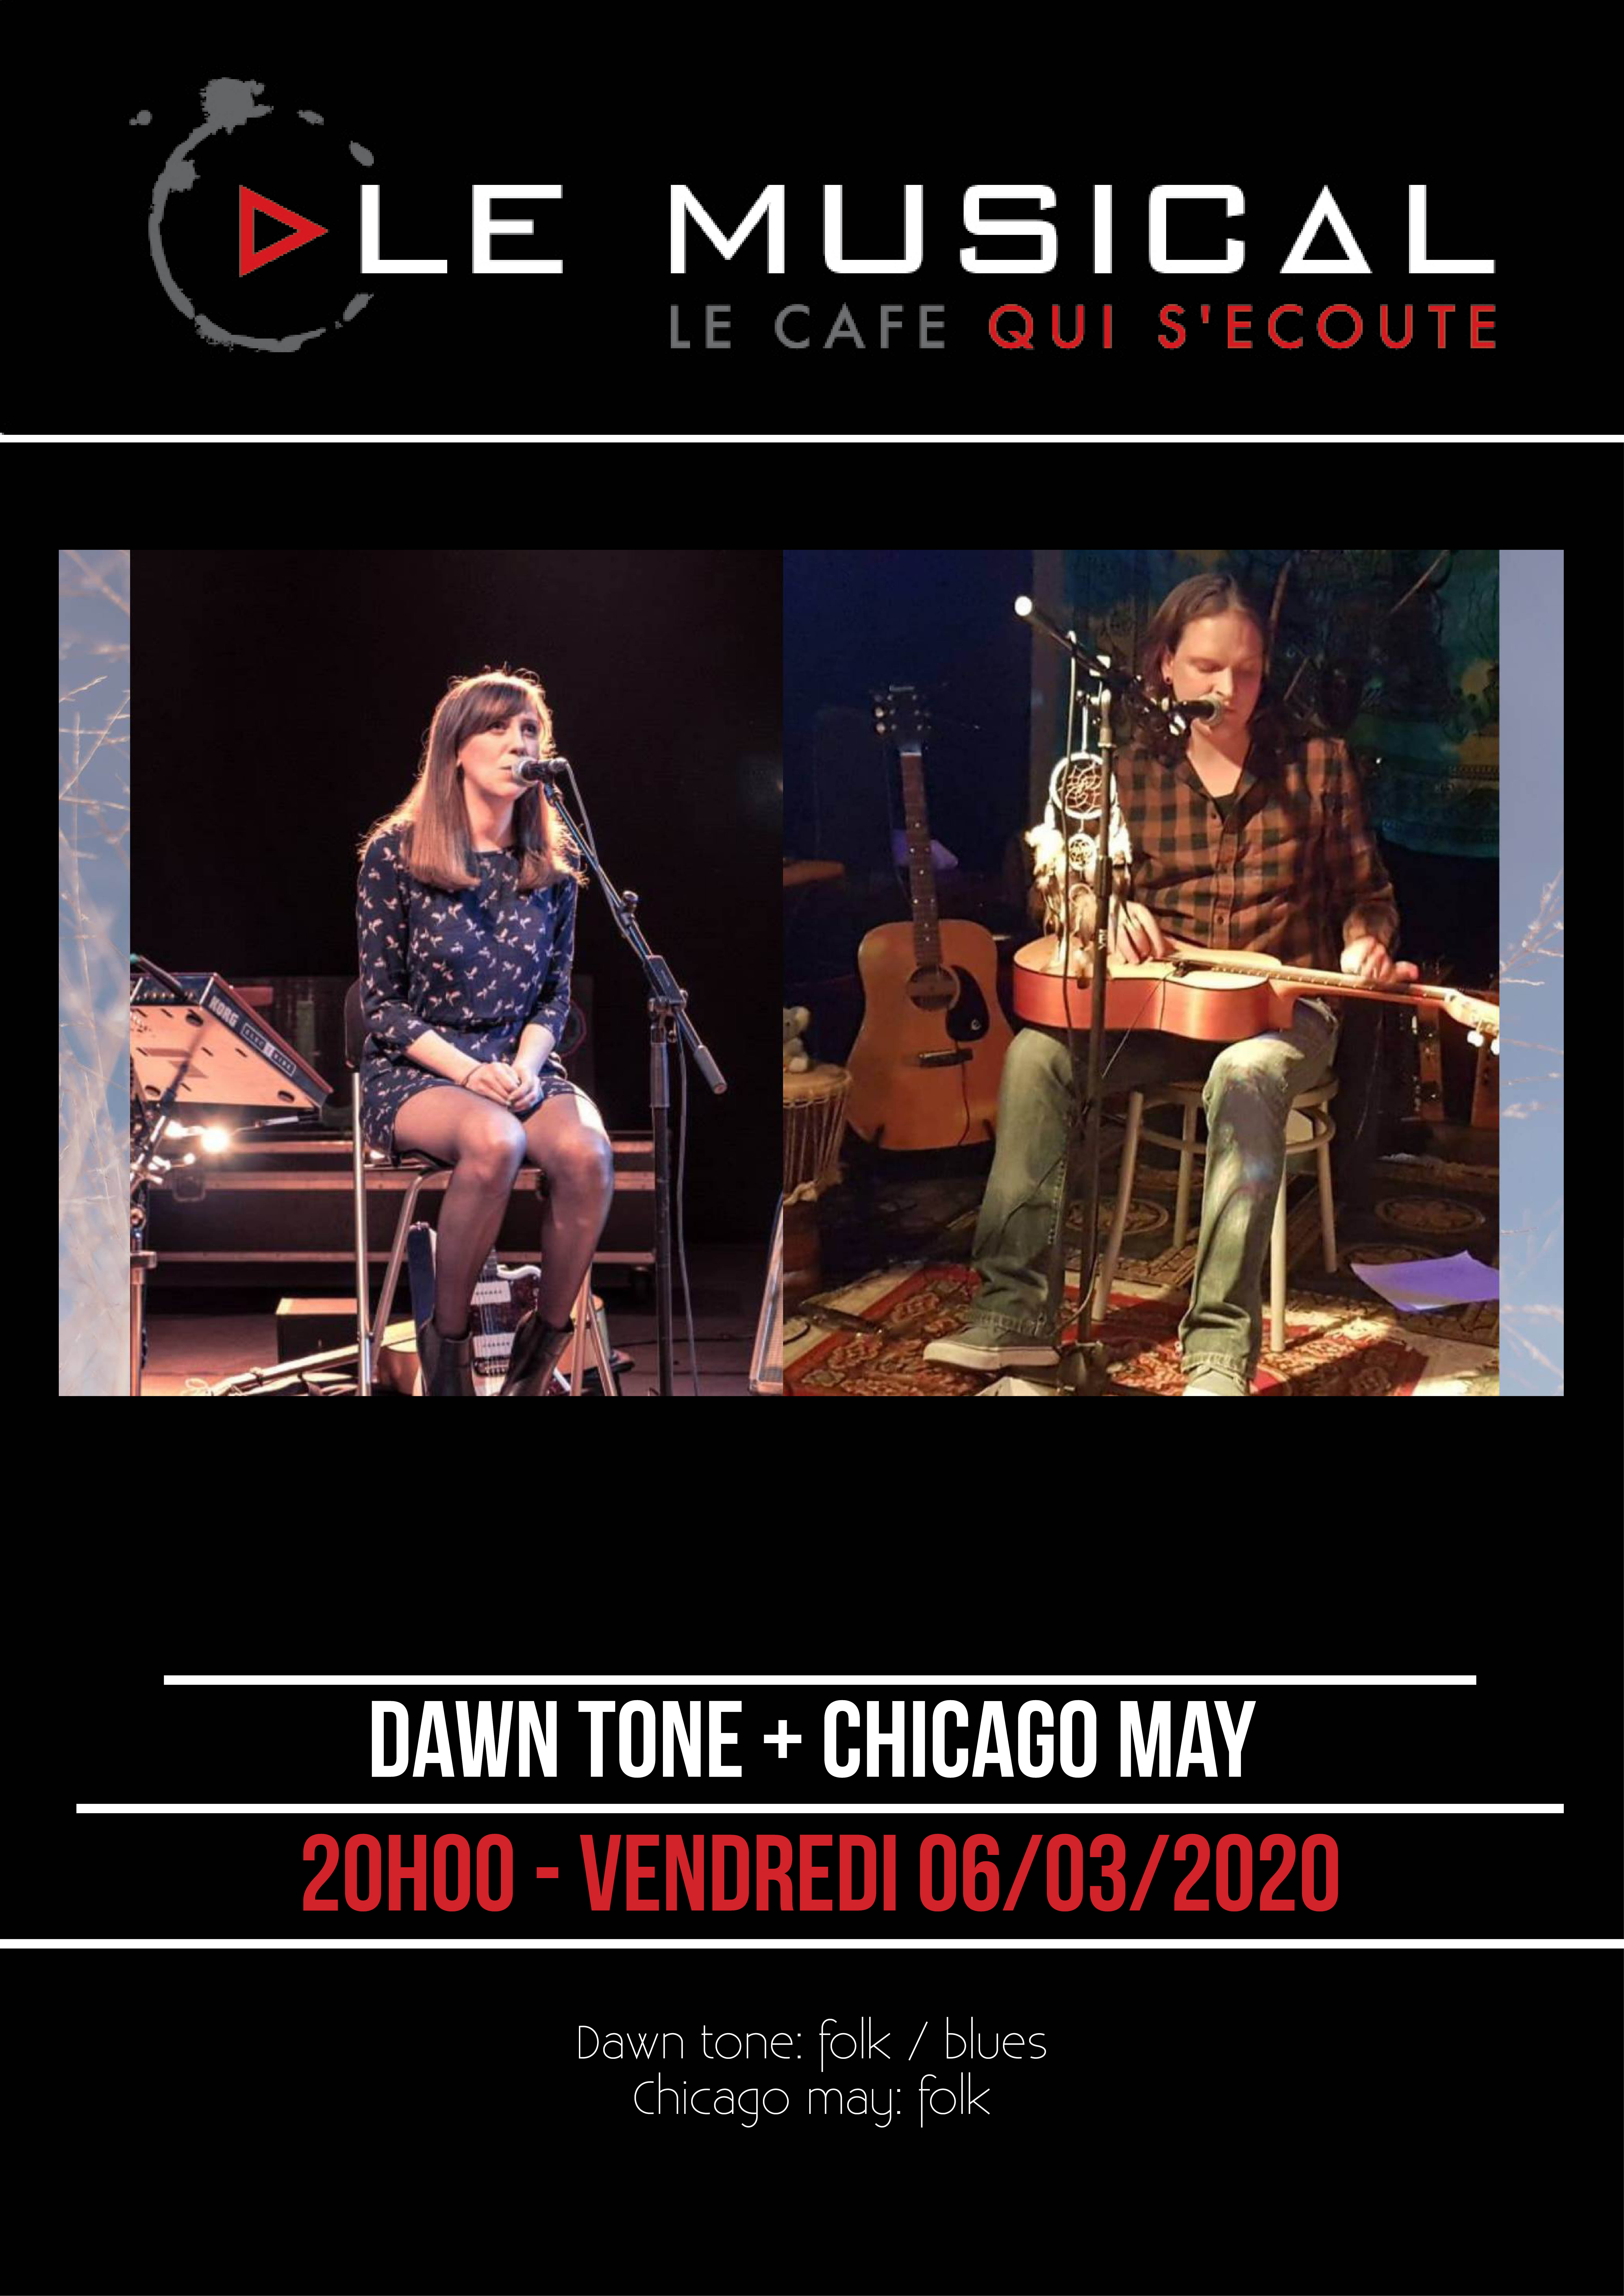 Chicago May + Dawntone au Musical